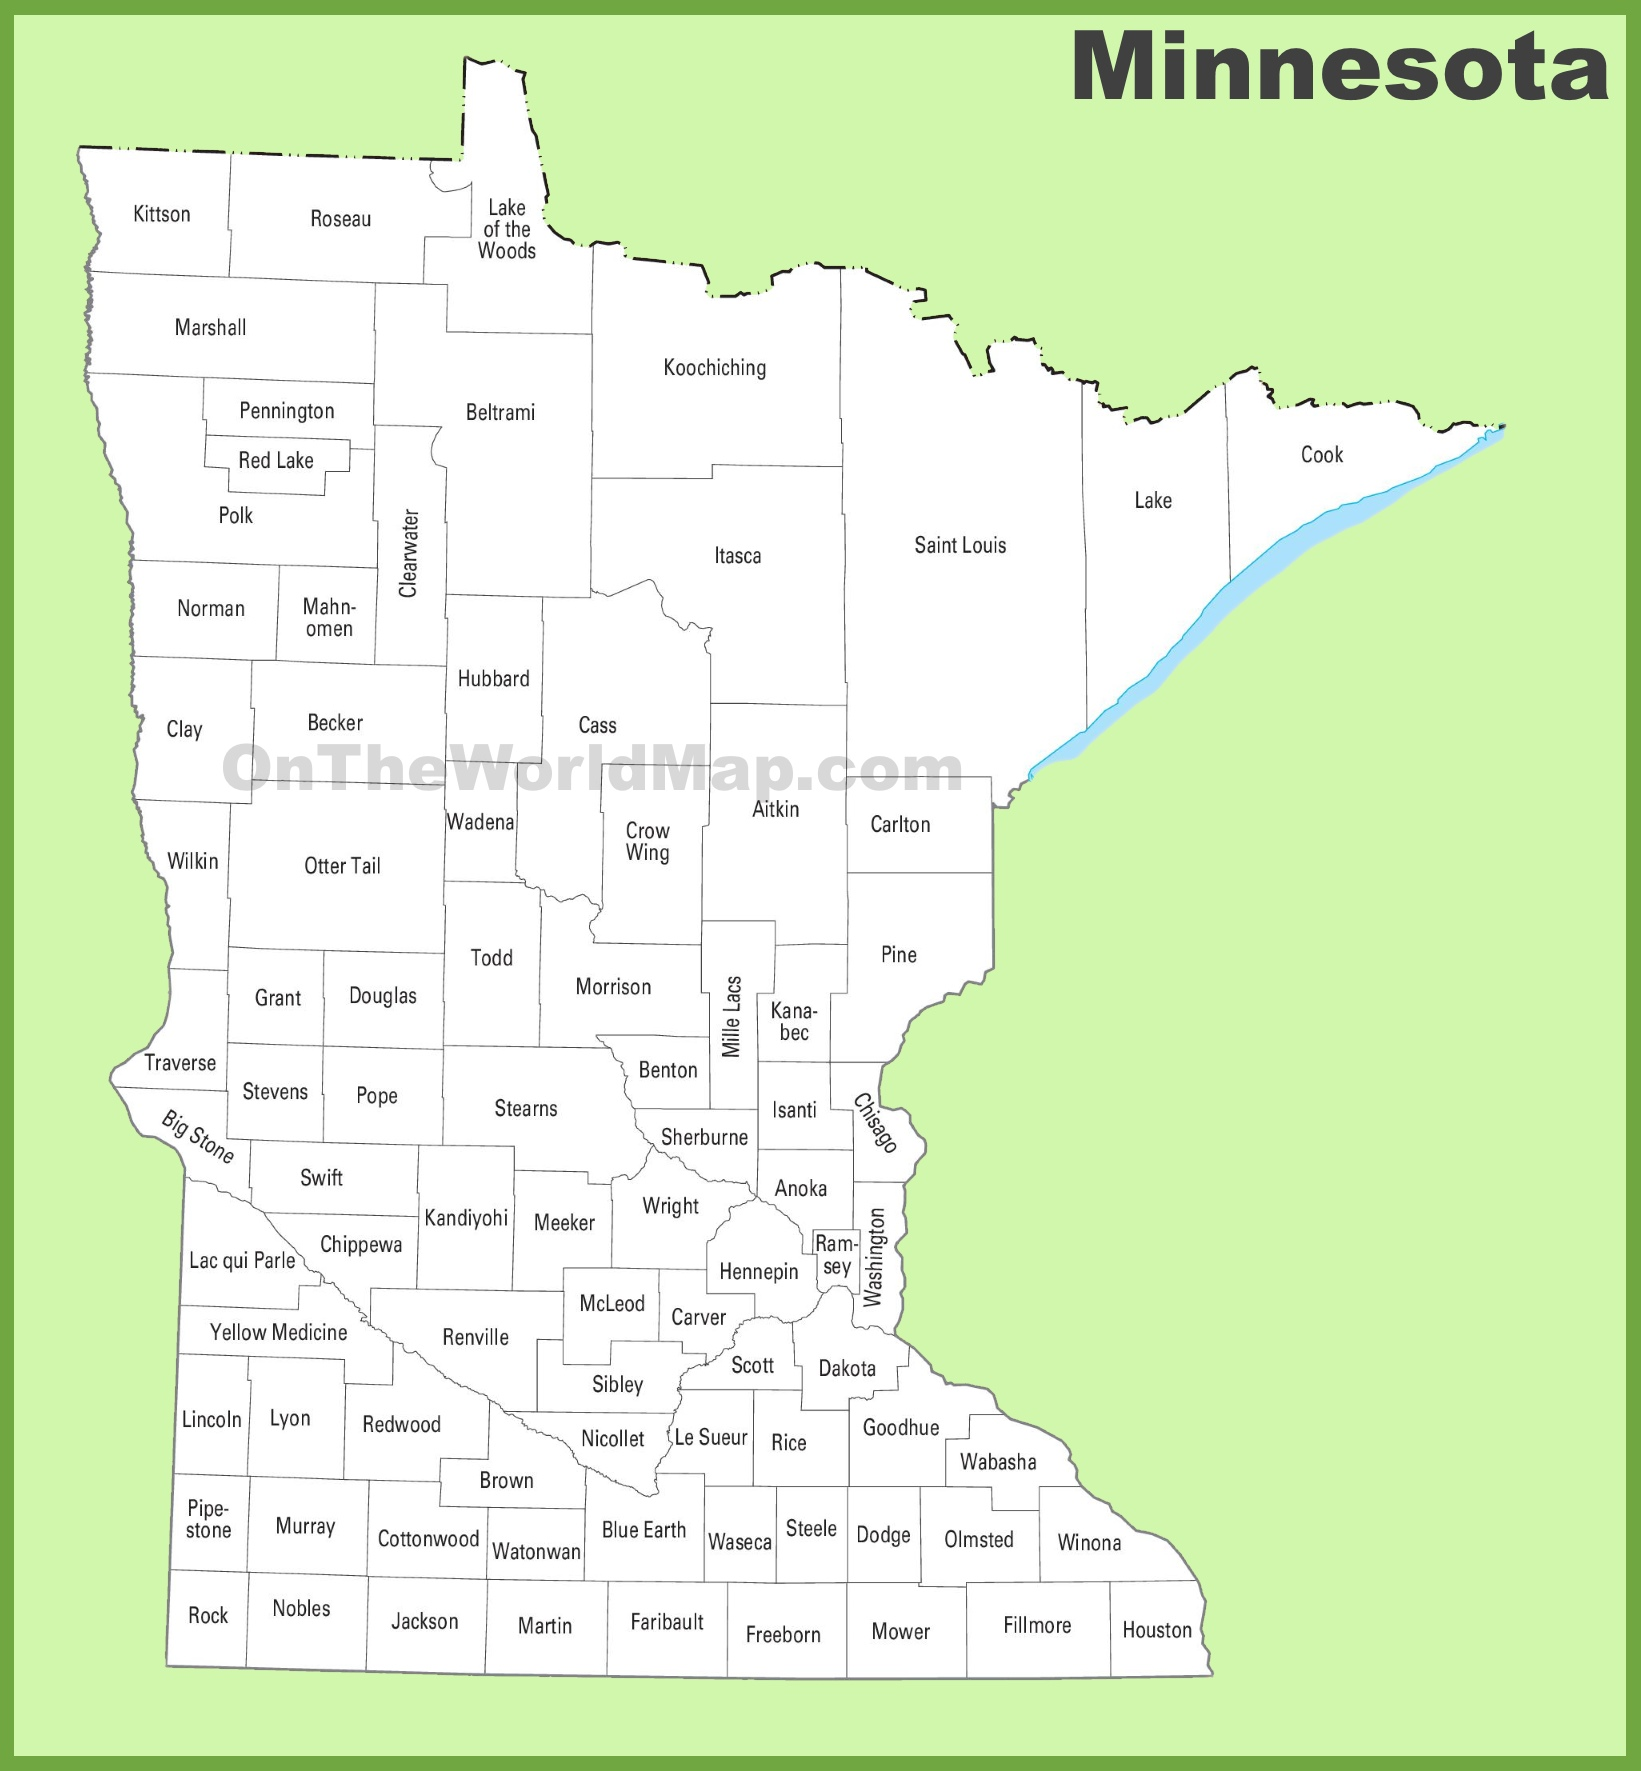 Minnesota County Map - State of minnesota map